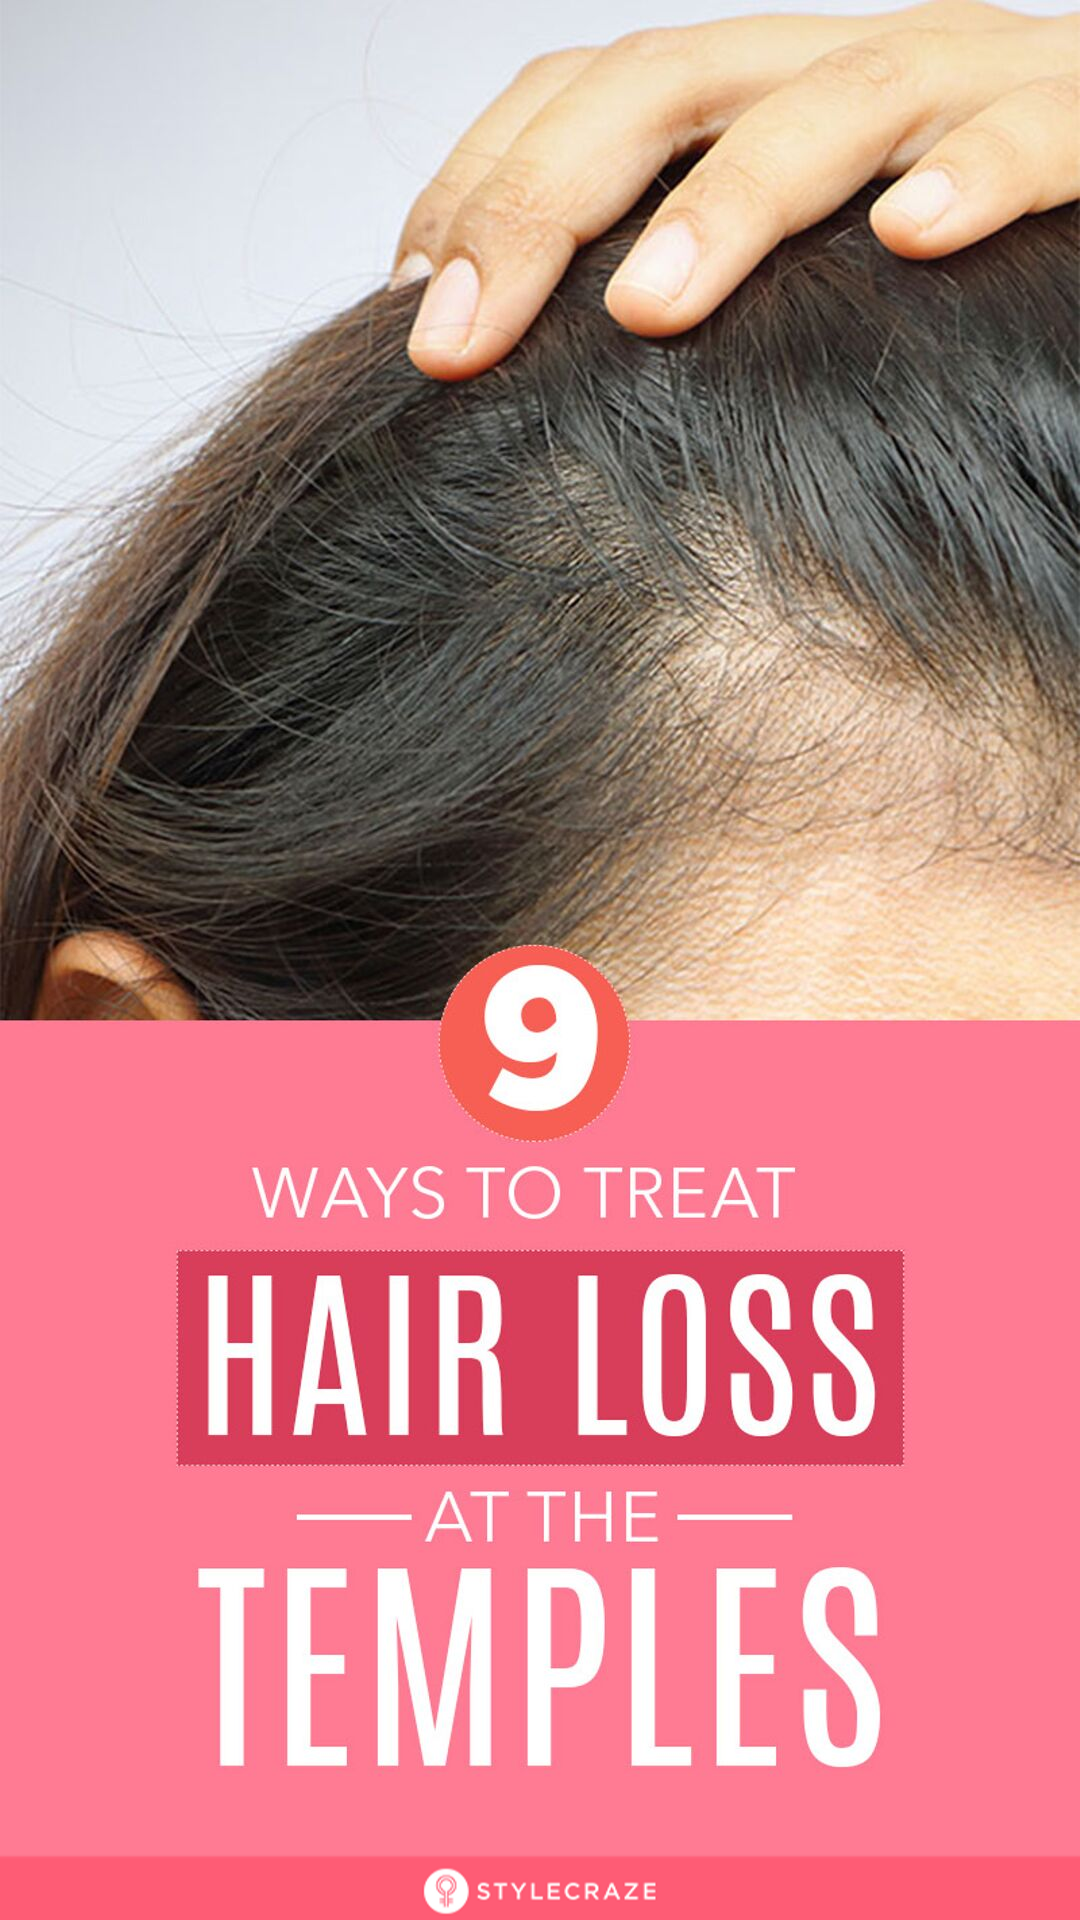 8 Simple Ways To Treat Hair Loss At The Temples emple hair loss in females is common and dealing with it can be quite hard but understanding hair loss and its causes can...